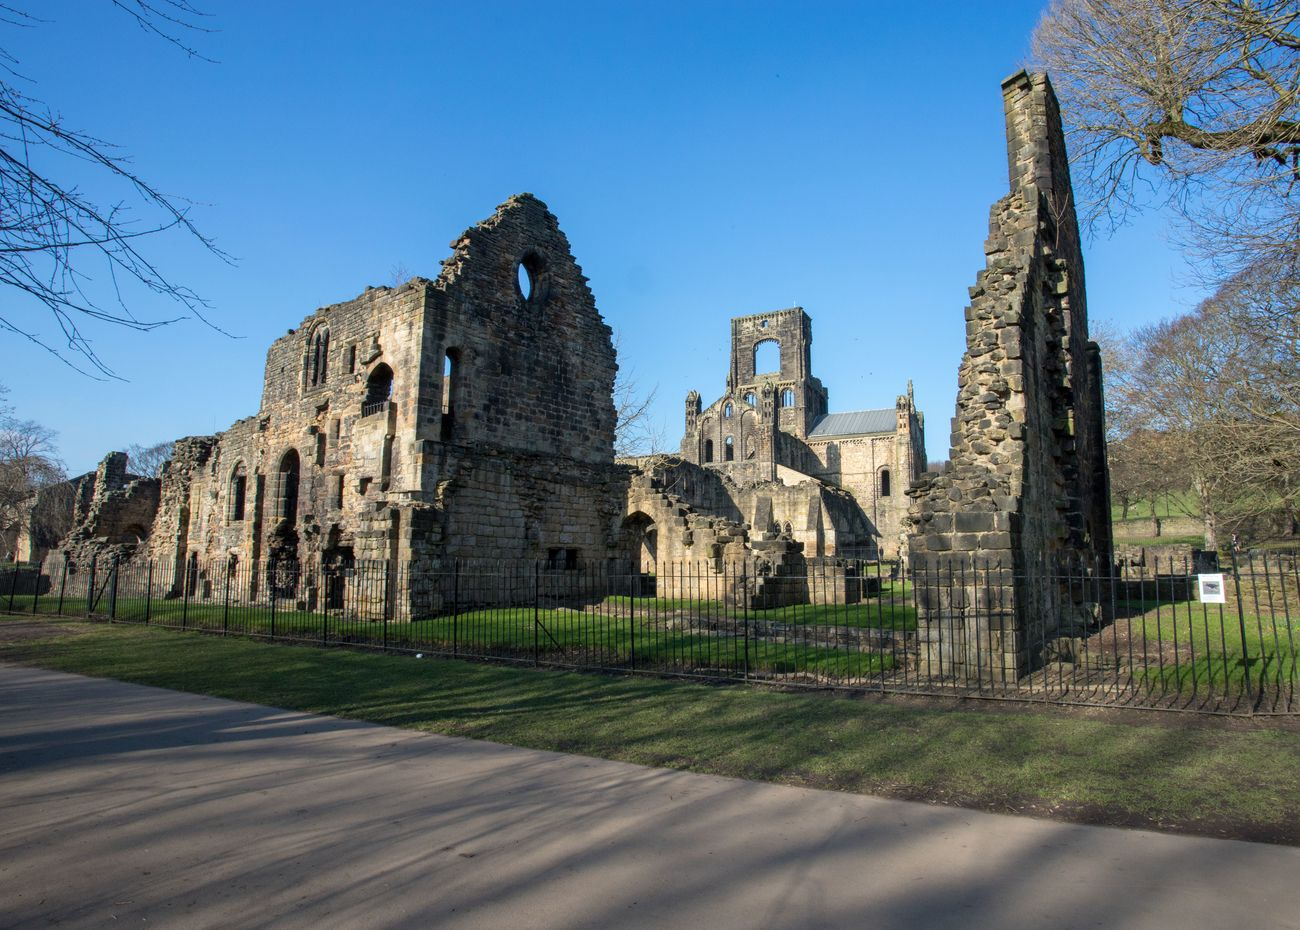 Kirkstall Abbey is a ruined Cistercian monastery in Kirkstall, north-west of Leeds city centre in West Yorkshire, England. It is set in a public park on the north bank of the River Aire. It was founded c. 1152. It was disestablished during the Dissolution of the Monasteries under Henry VIII.